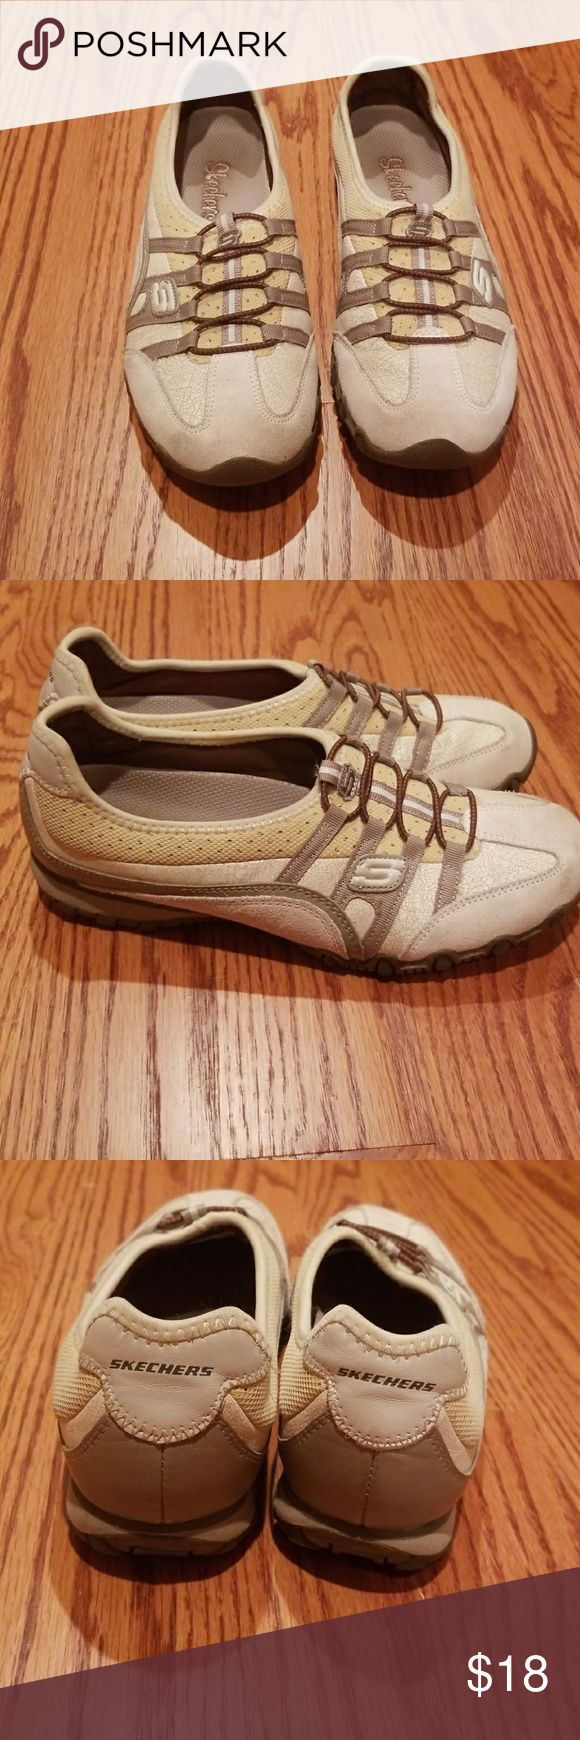 Skechers slip on shoes Lightly worn.  I accept offers! Skechers Shoes Sneakers